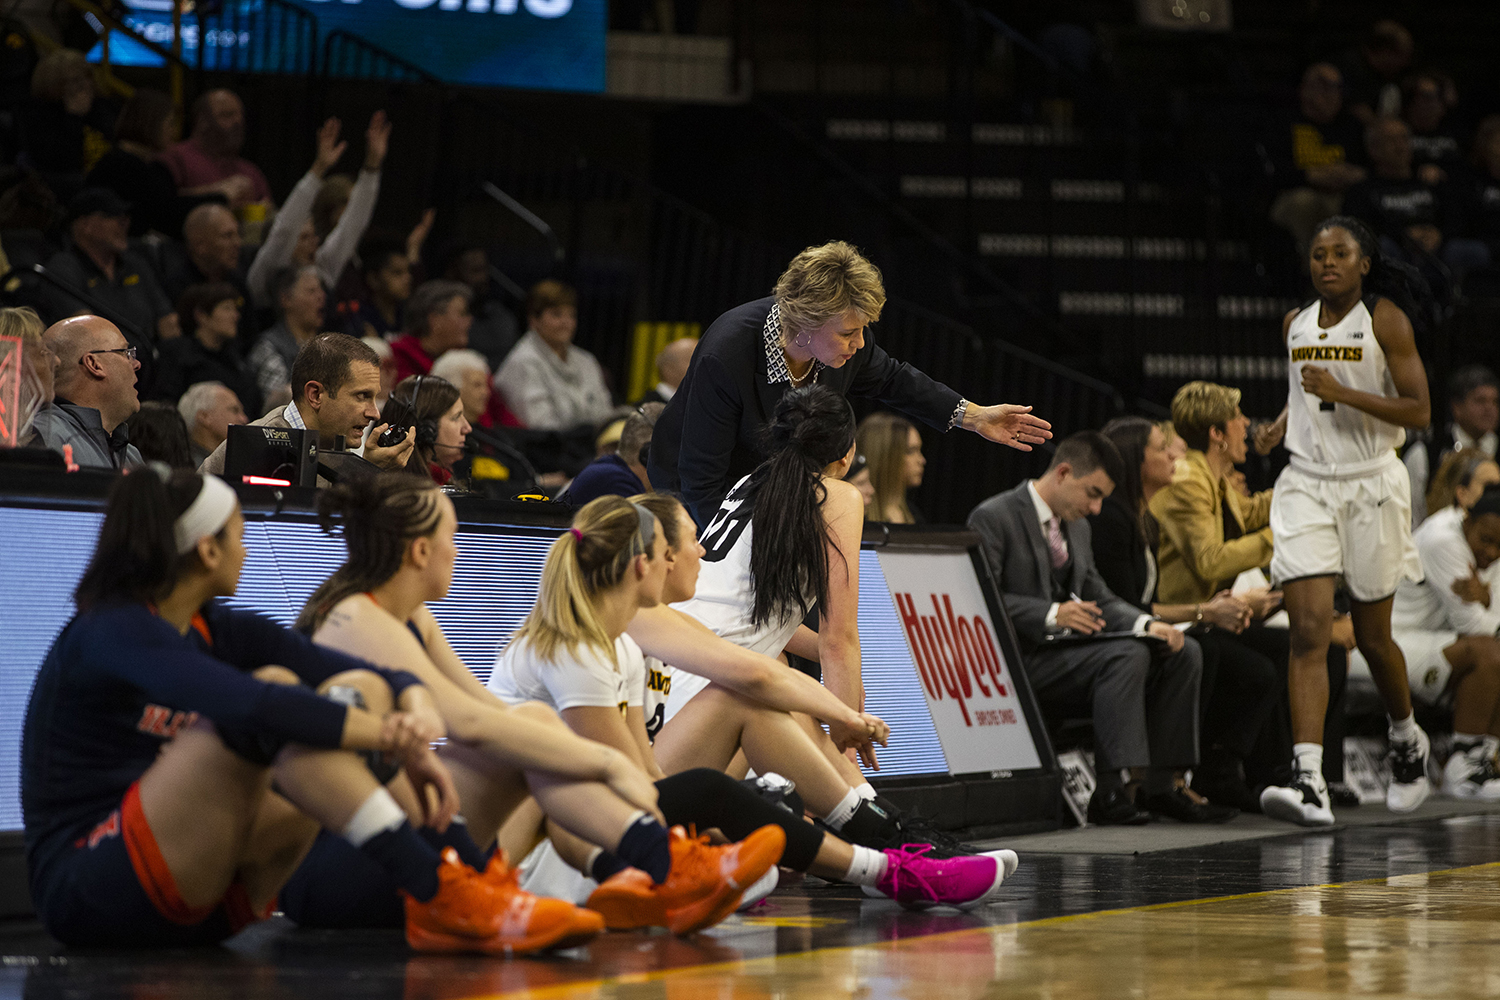 Iowa head coach Lisa Bluder (top center) gestures in conversation with center Megan Gustafson (bottom center) during the Iowa/Illinois women's basketball game at Carver-Hawkeye Arena on Thursday, February 14, 2019. The Hawkeyes defeated the Fighting Illini, 88-66.